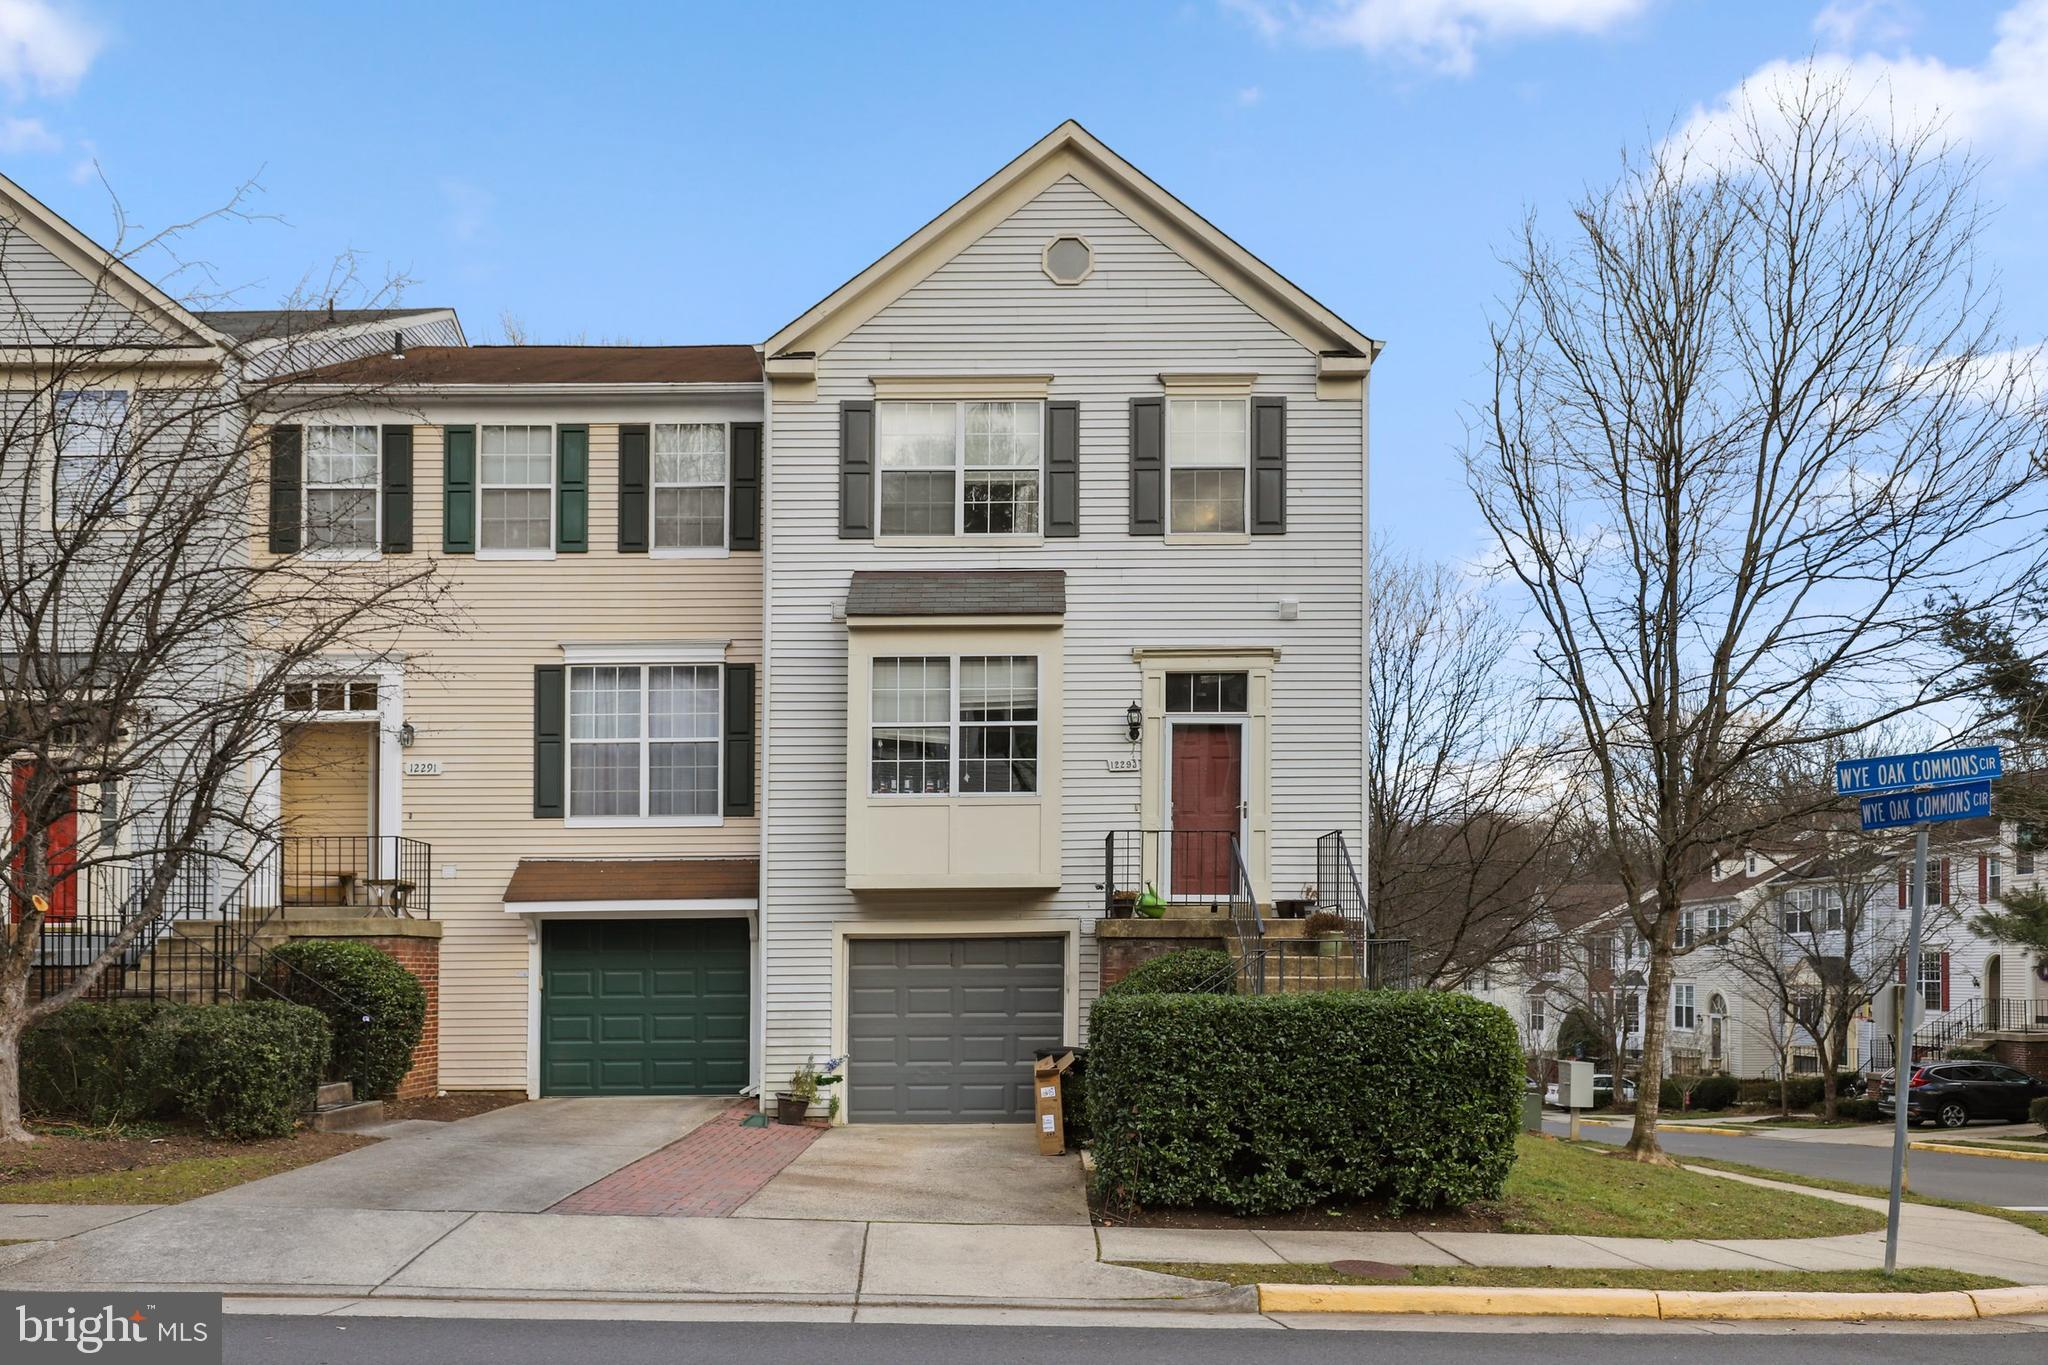 Be sure to see this lovely 3 bedroom, 4 bath end unit town home! Entering this home you are greeted